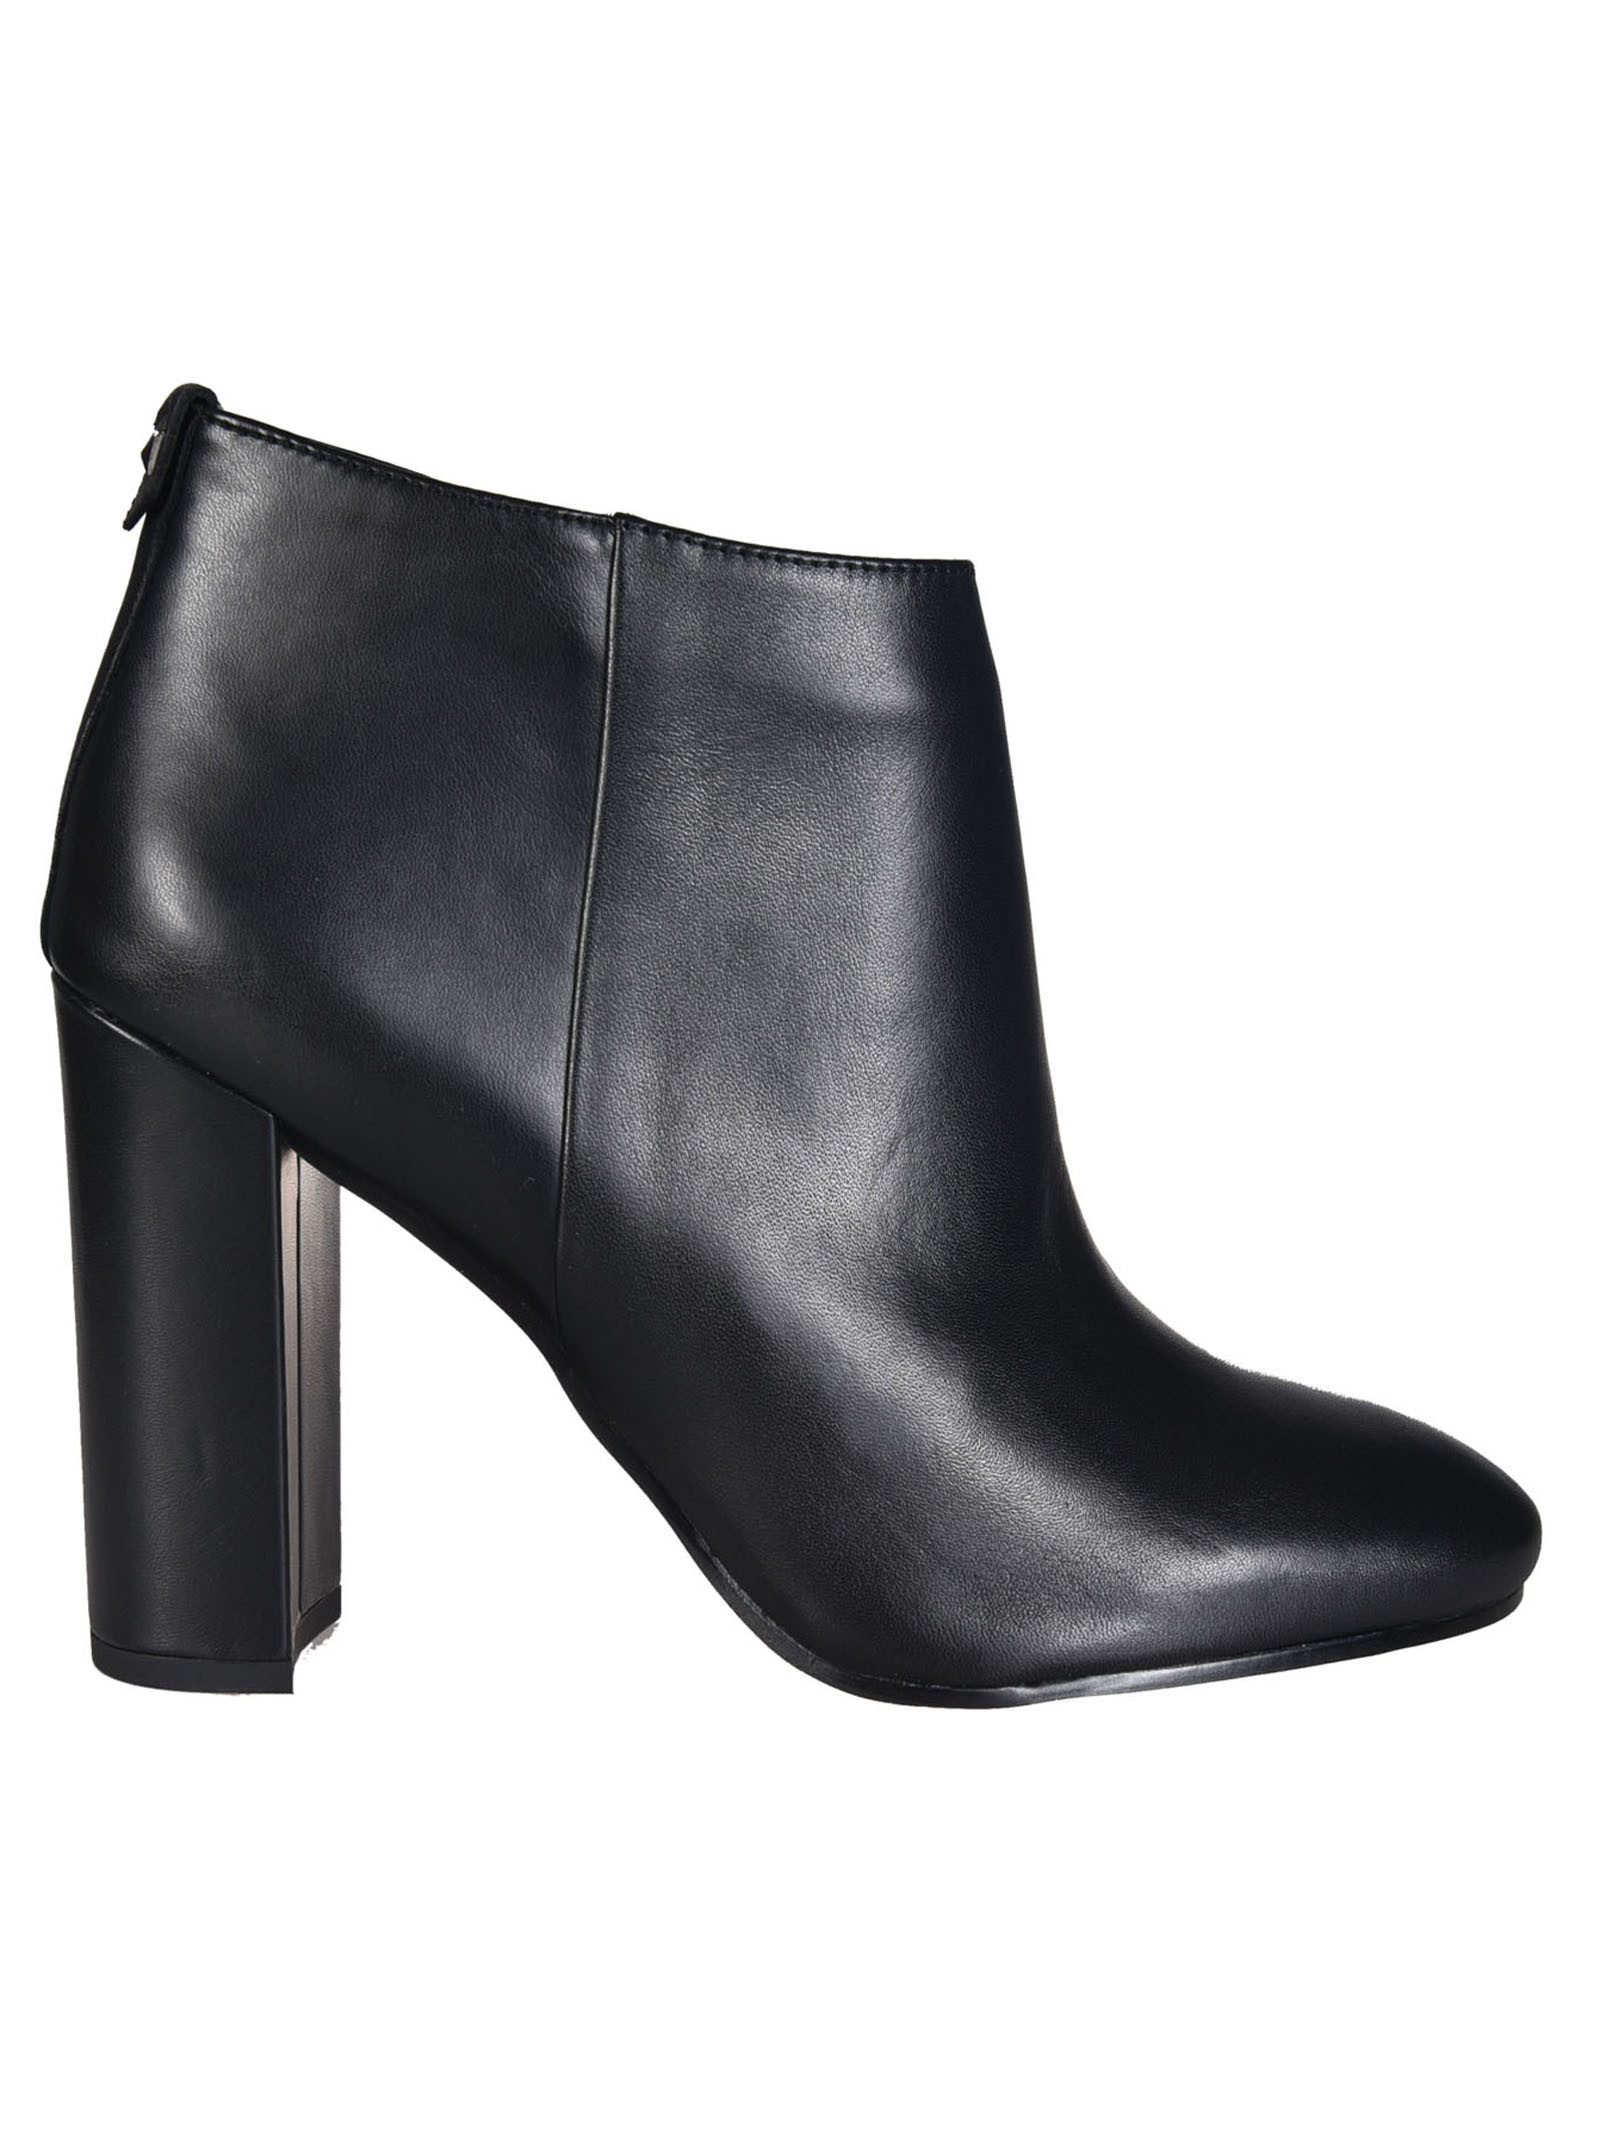 Cambell Ankle Boots from Sam Edelman: Black Cambell Ankle Boots with almond toe, side zip closure and block heel